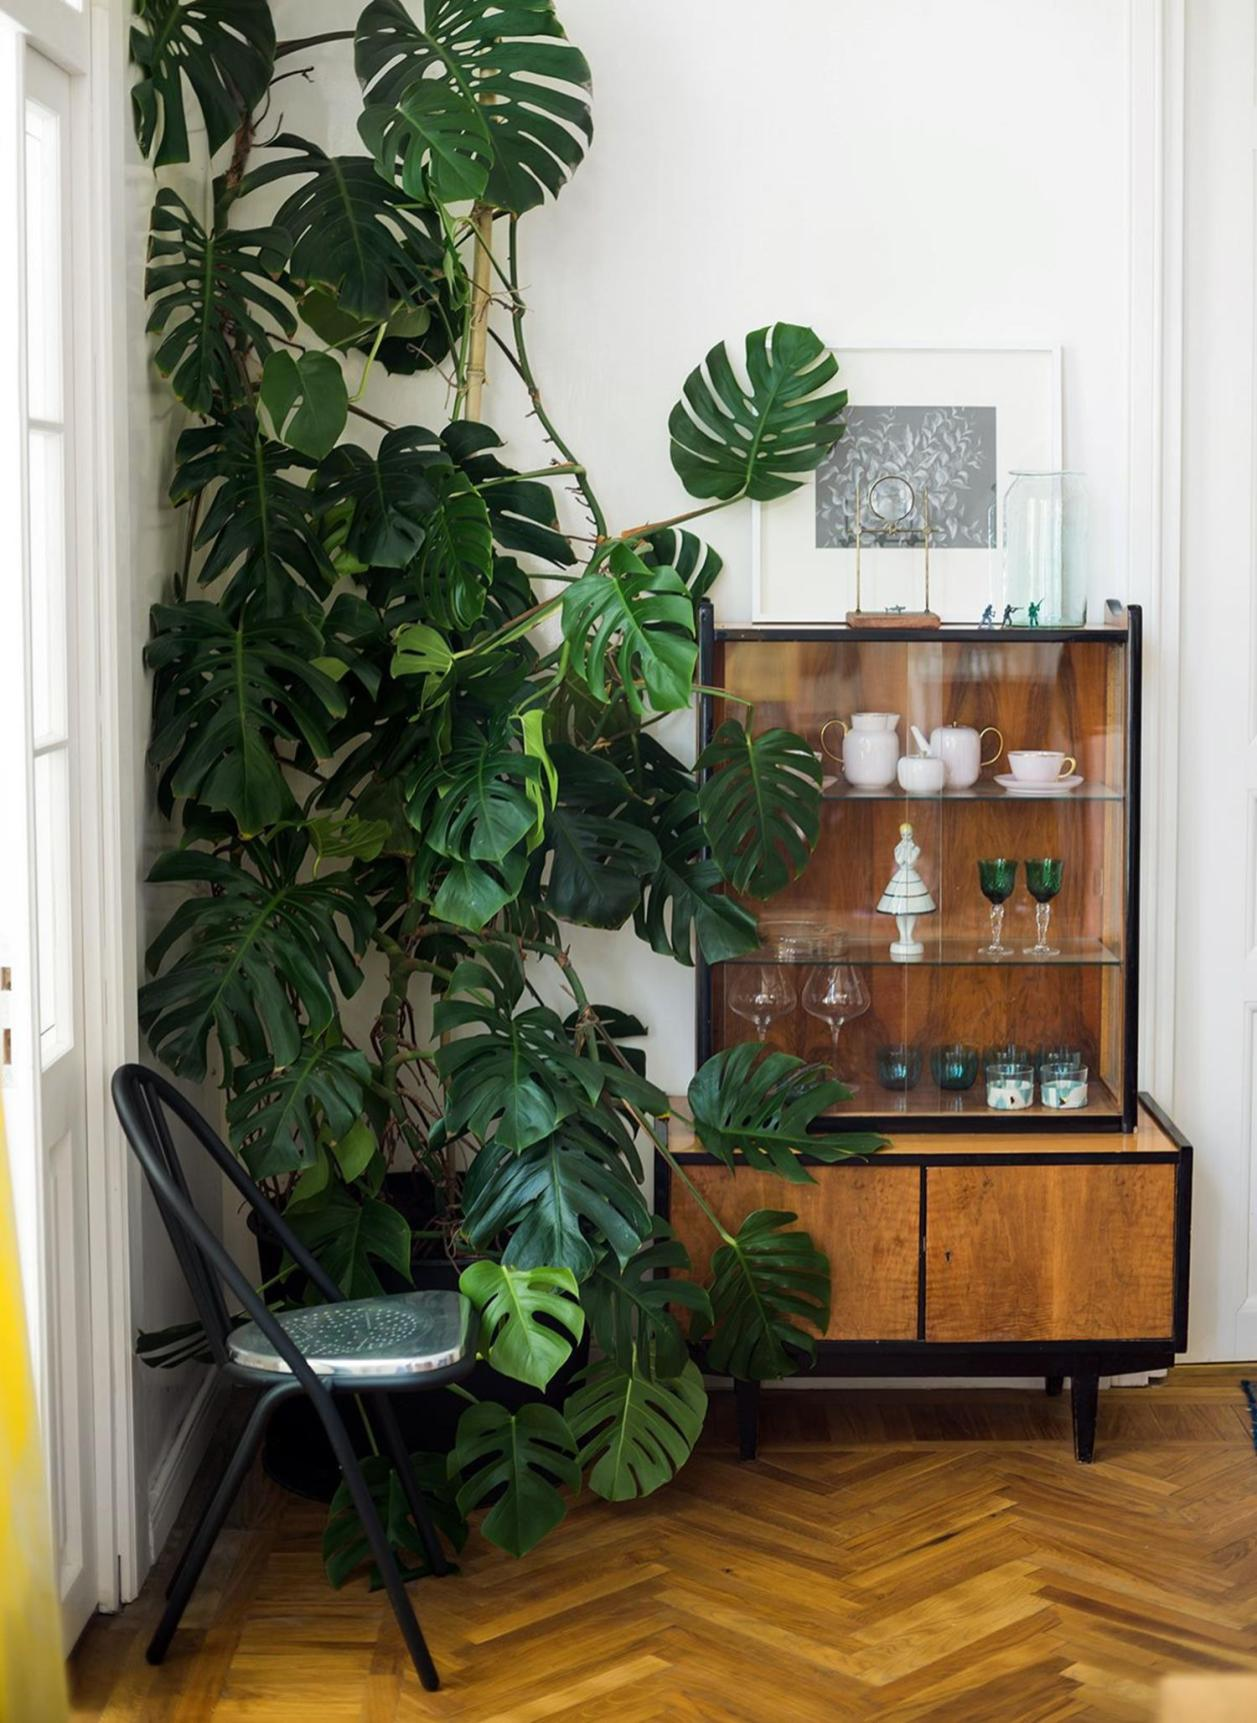 Urban Jungle Room Decor 2